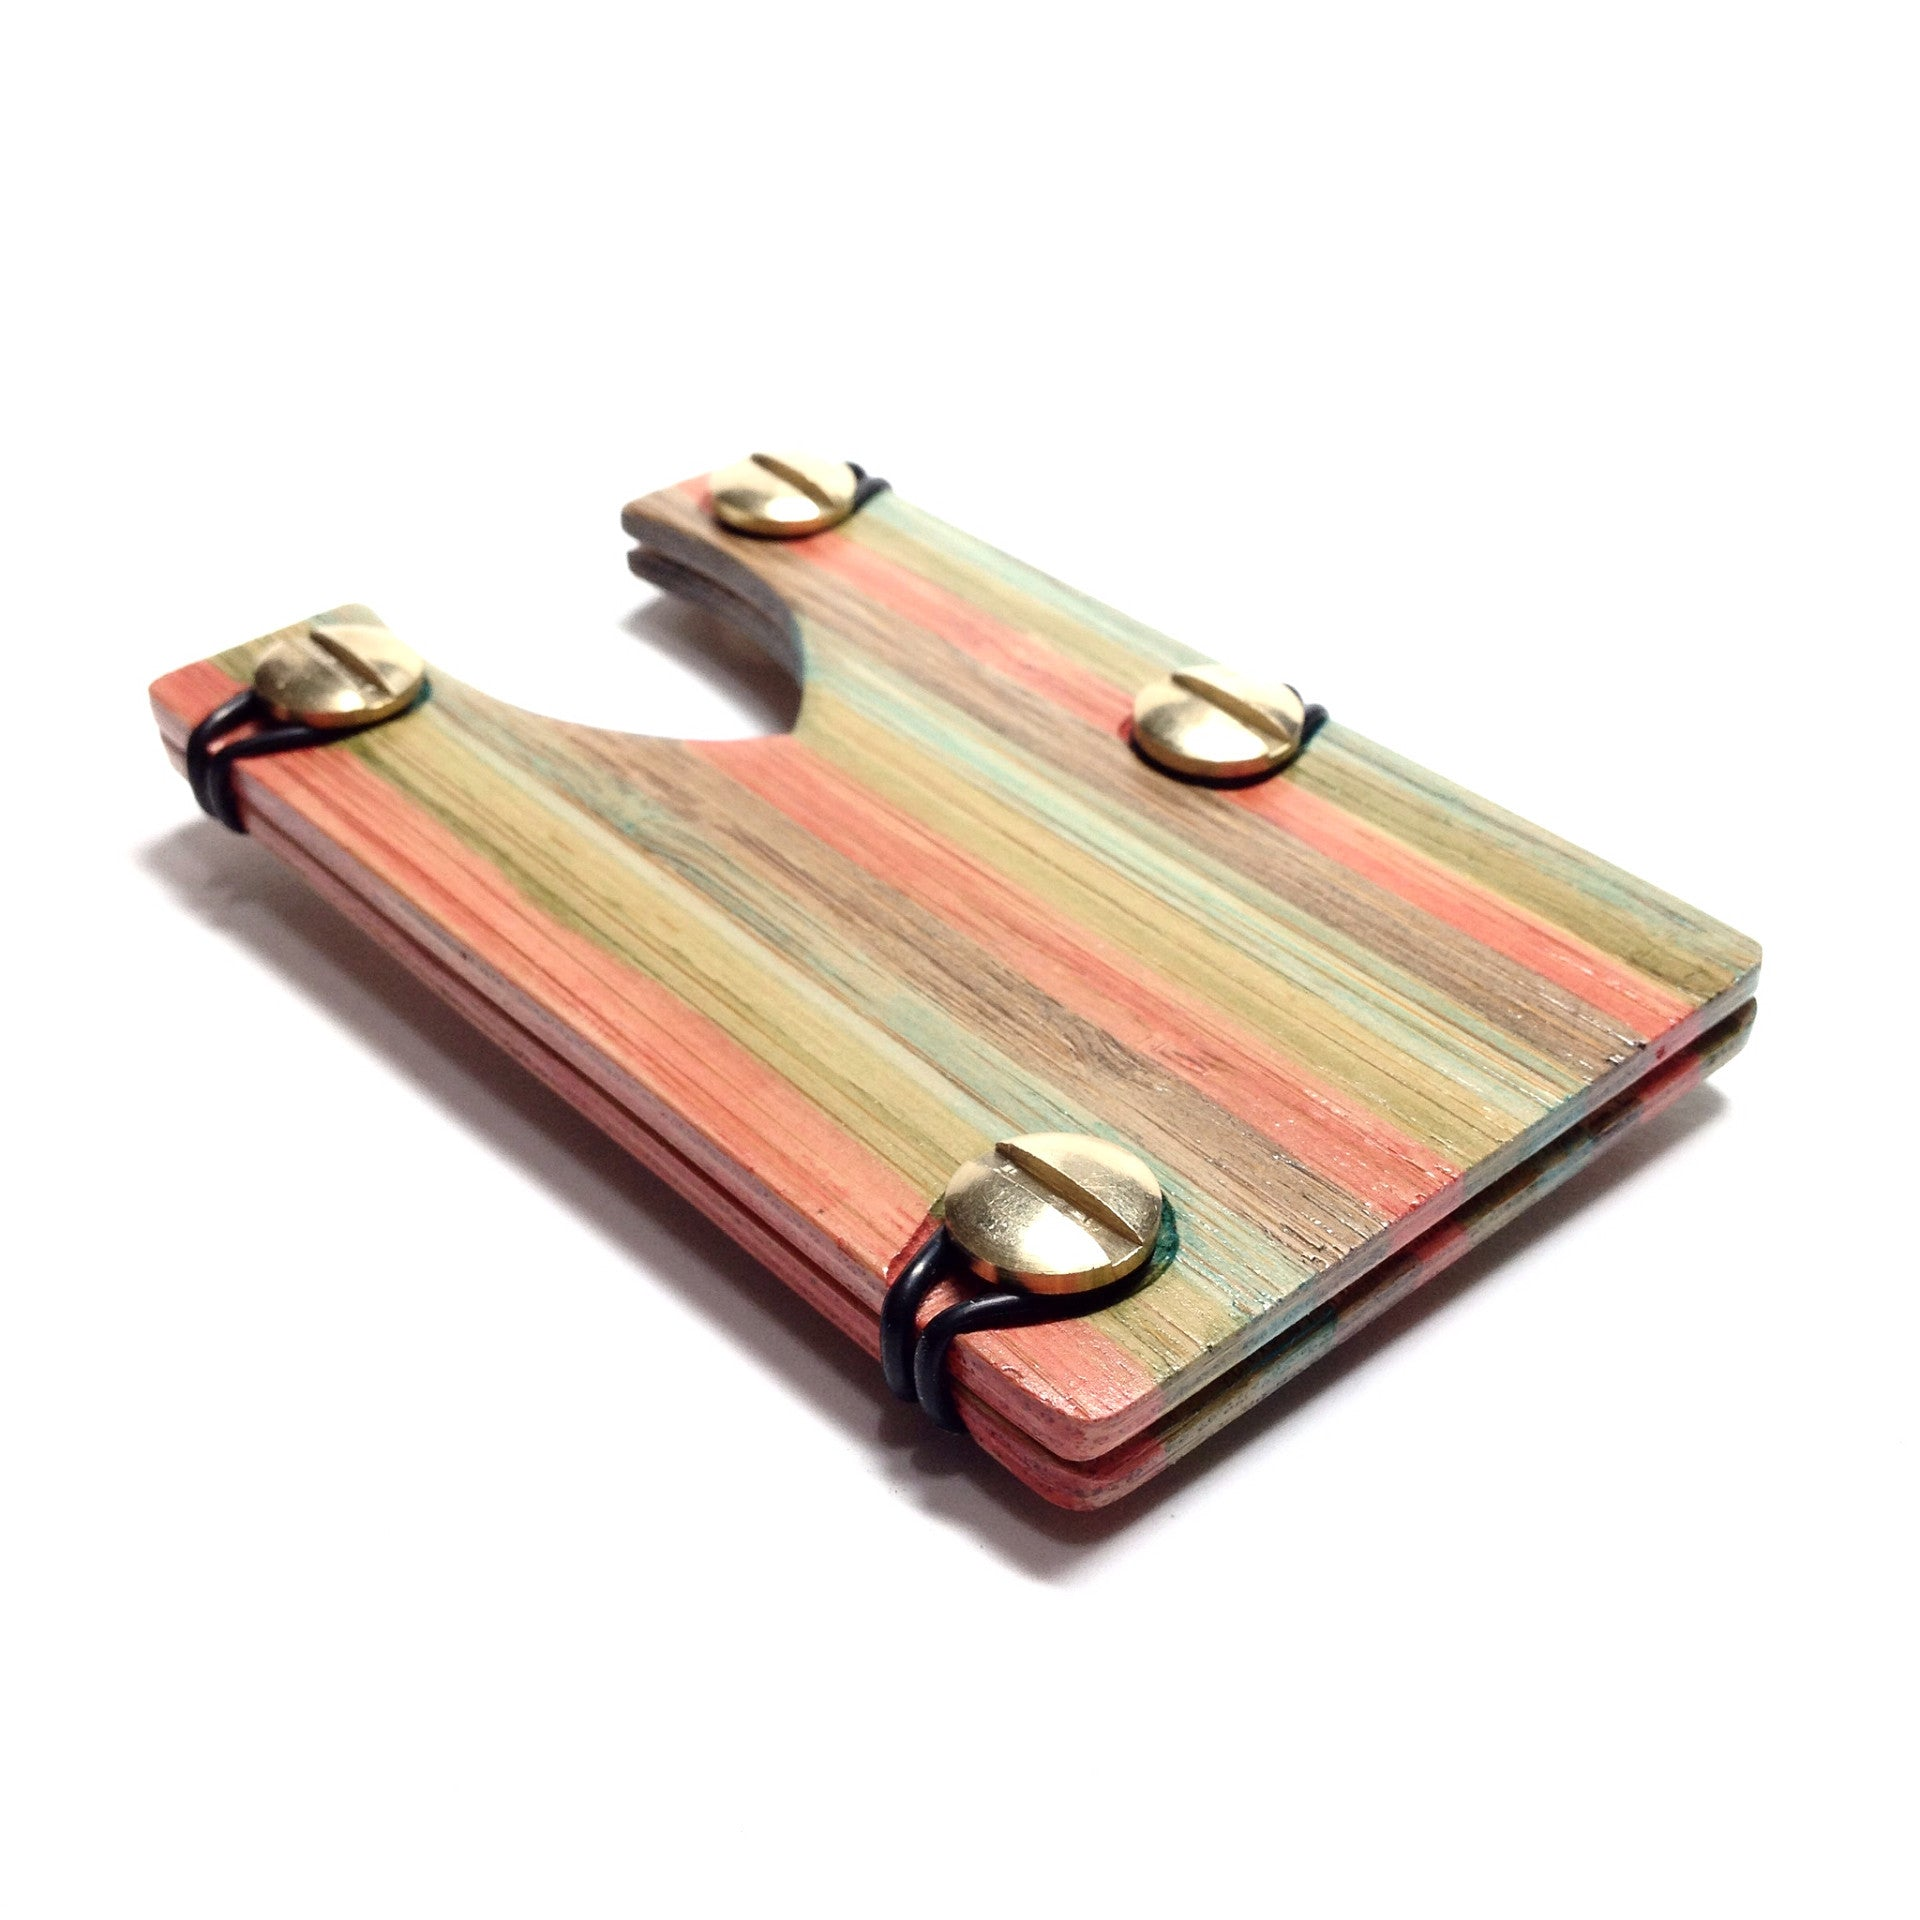 Striped Edition - Bound Tight Wallets